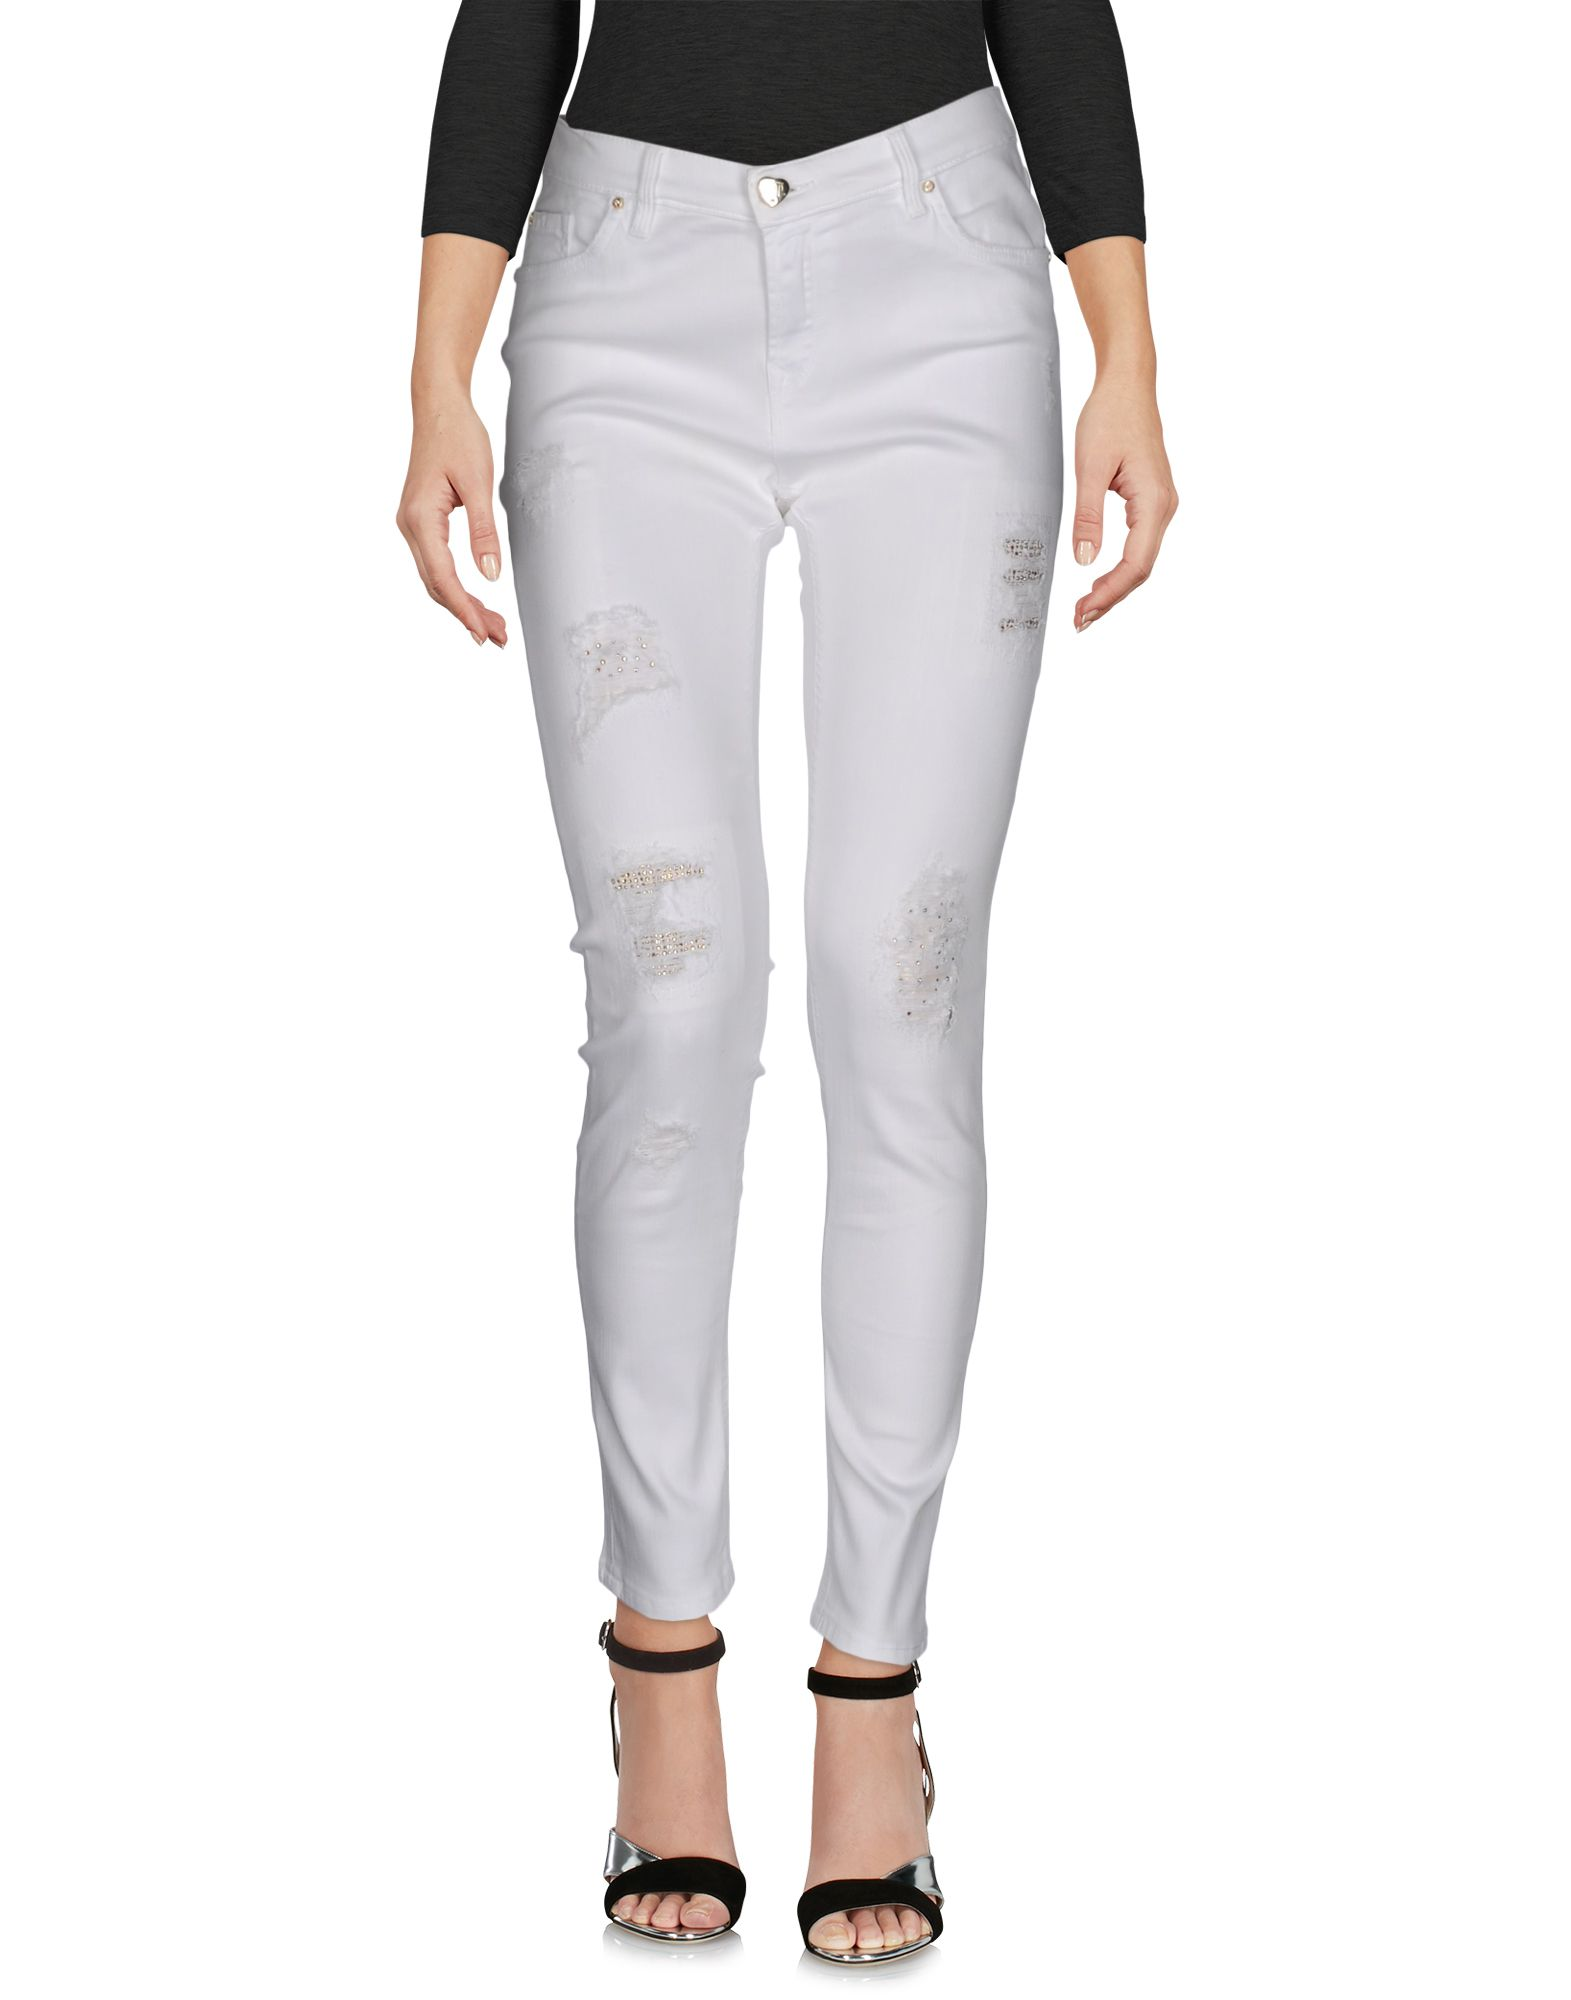 Pantaloni Jeans Vdp Collection Donna - Acquista online su 7xSLUp5Y